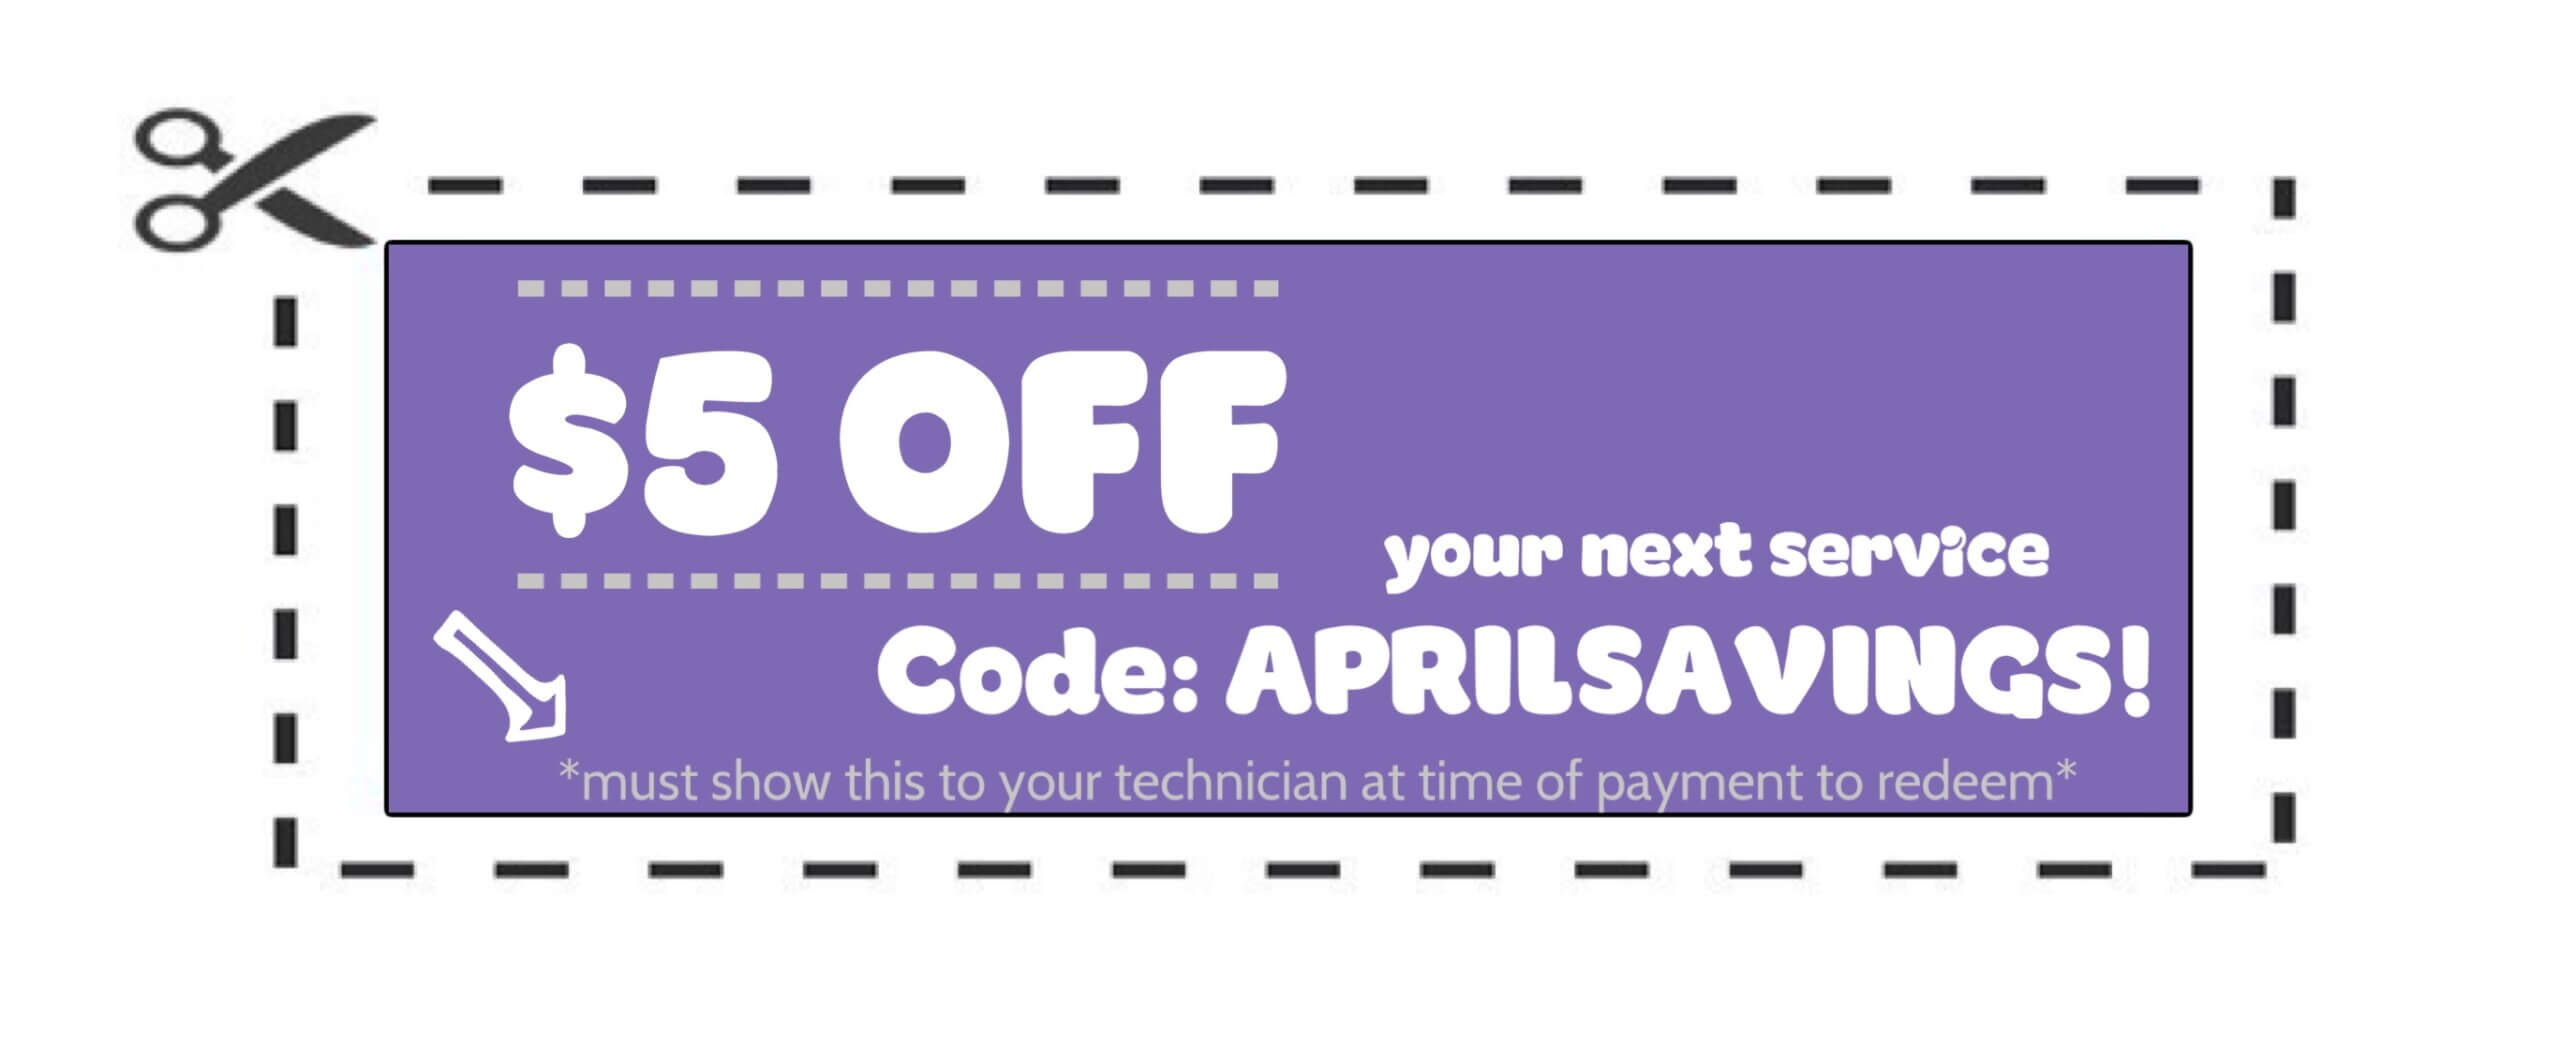 APRIL SAVINGS